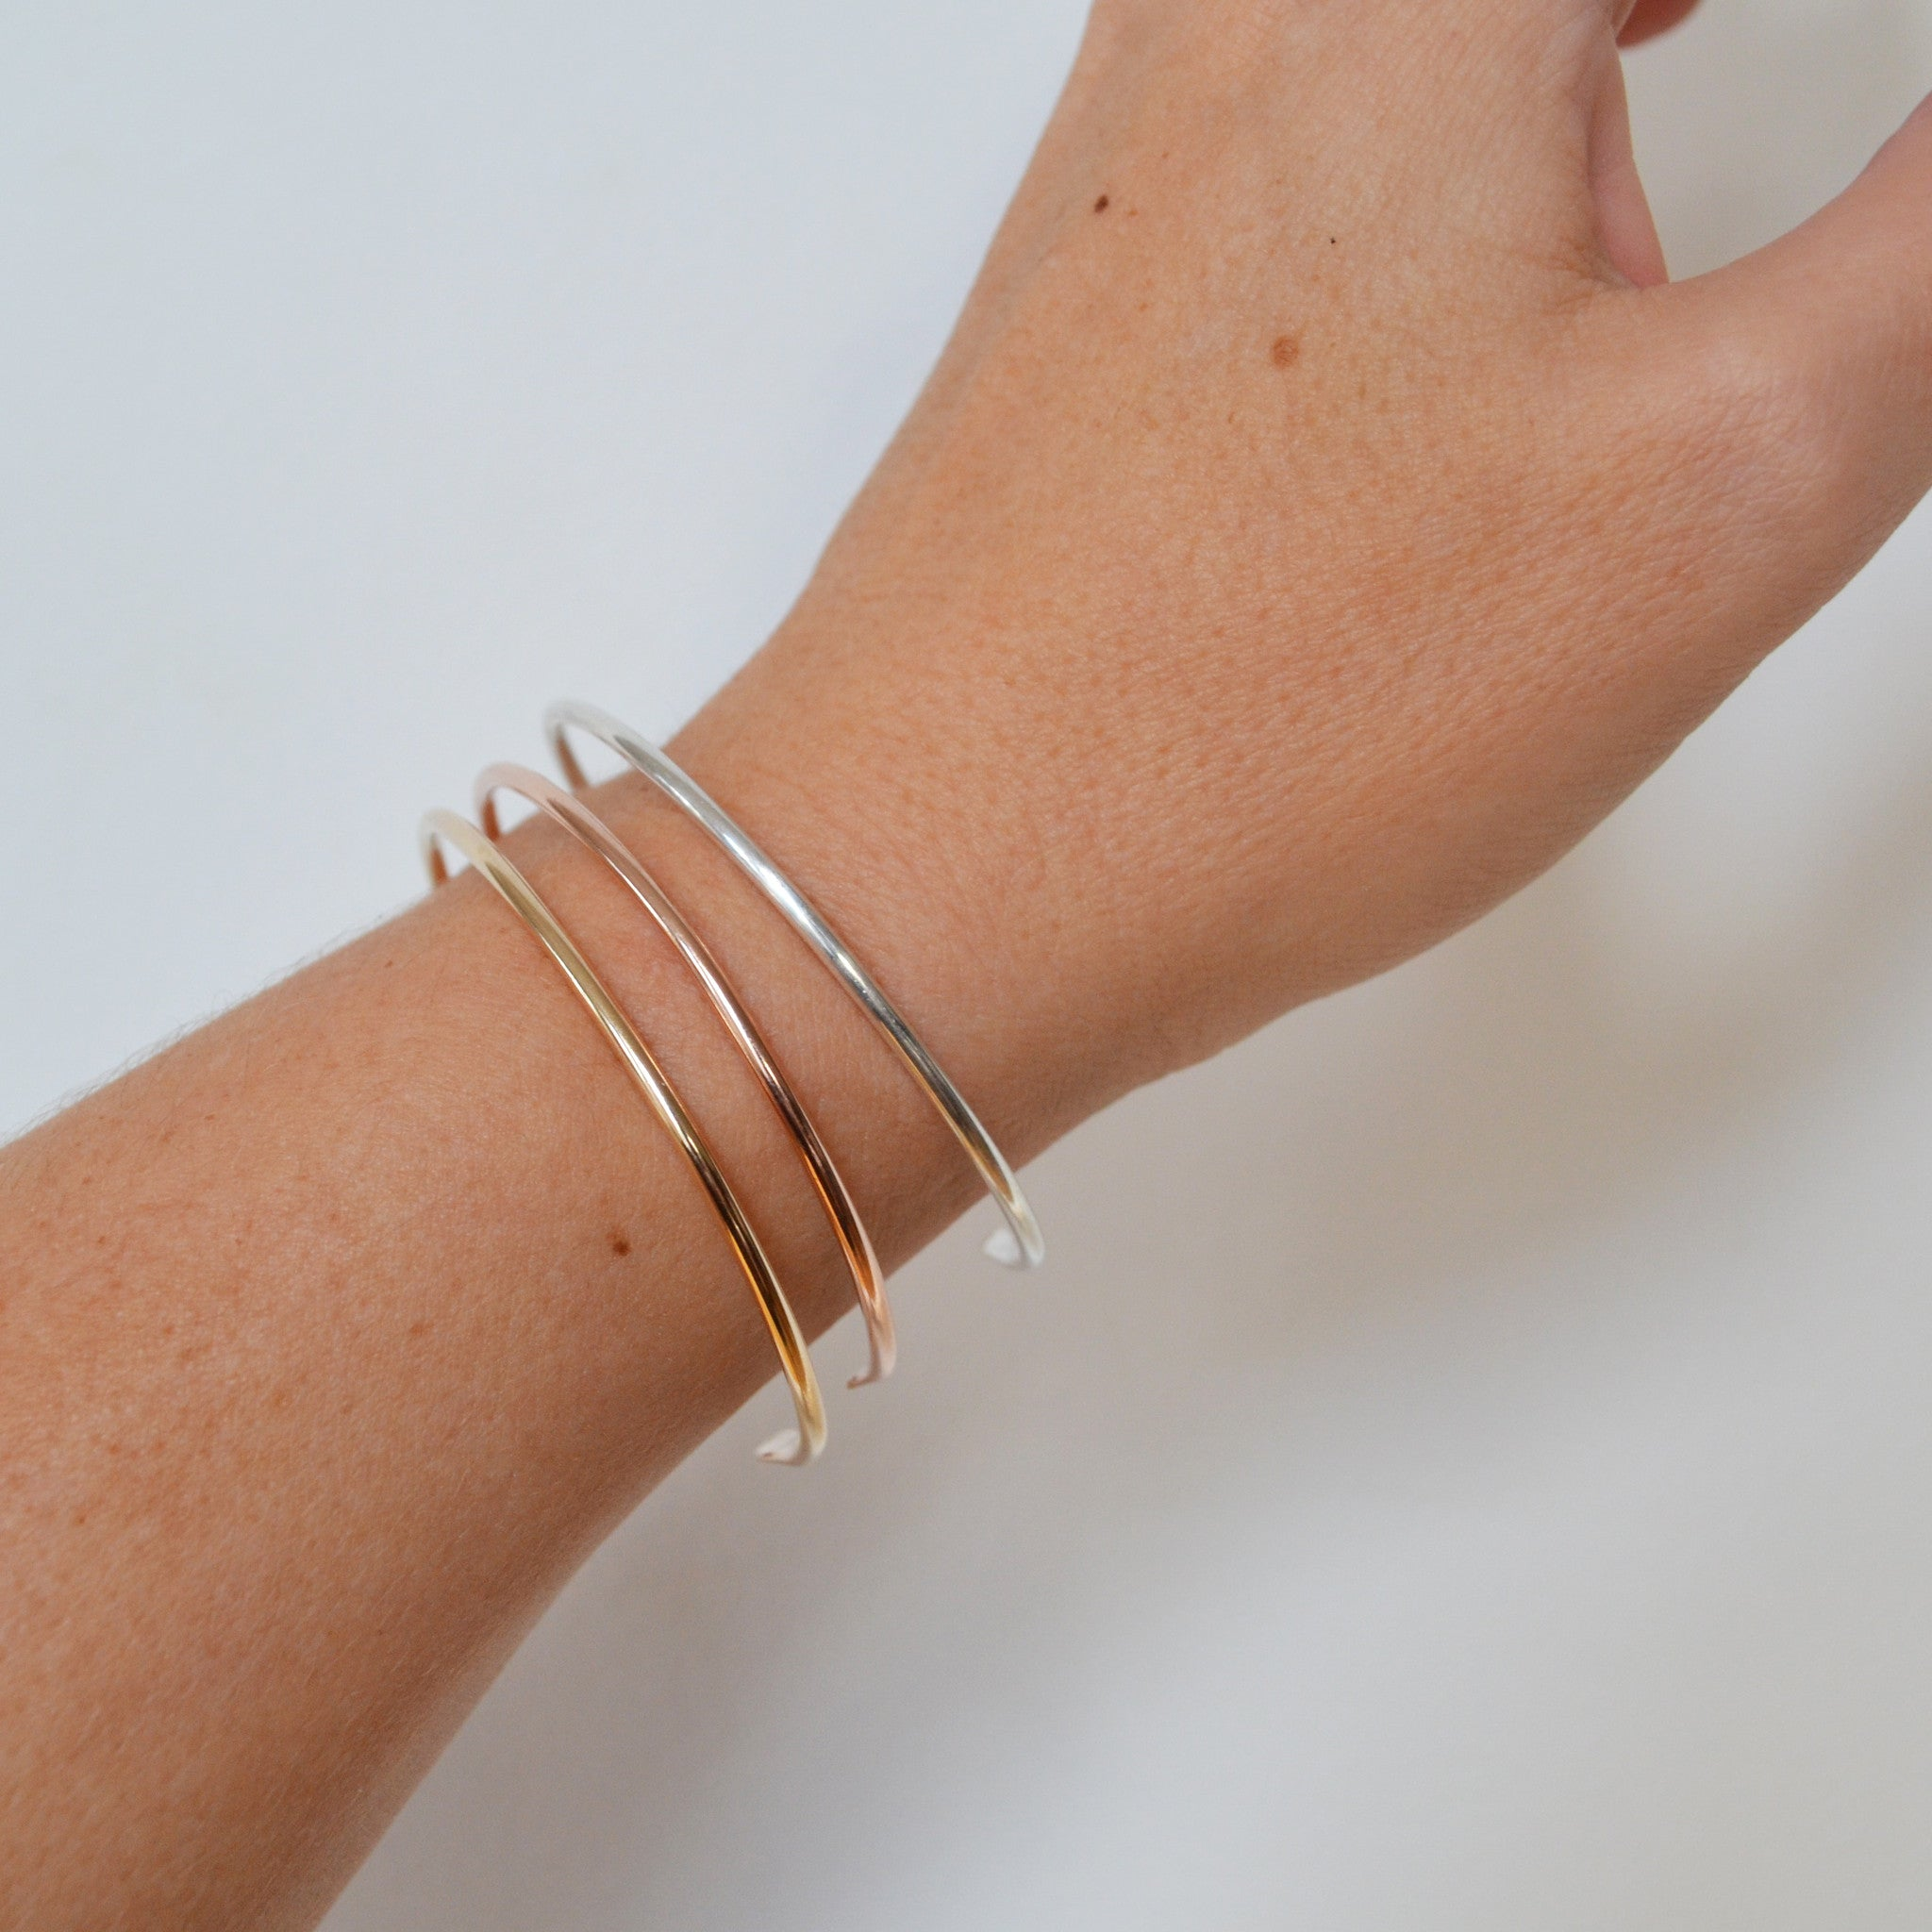 Simple Cuff Bracelet, Gold, Rose Gold, or Silver